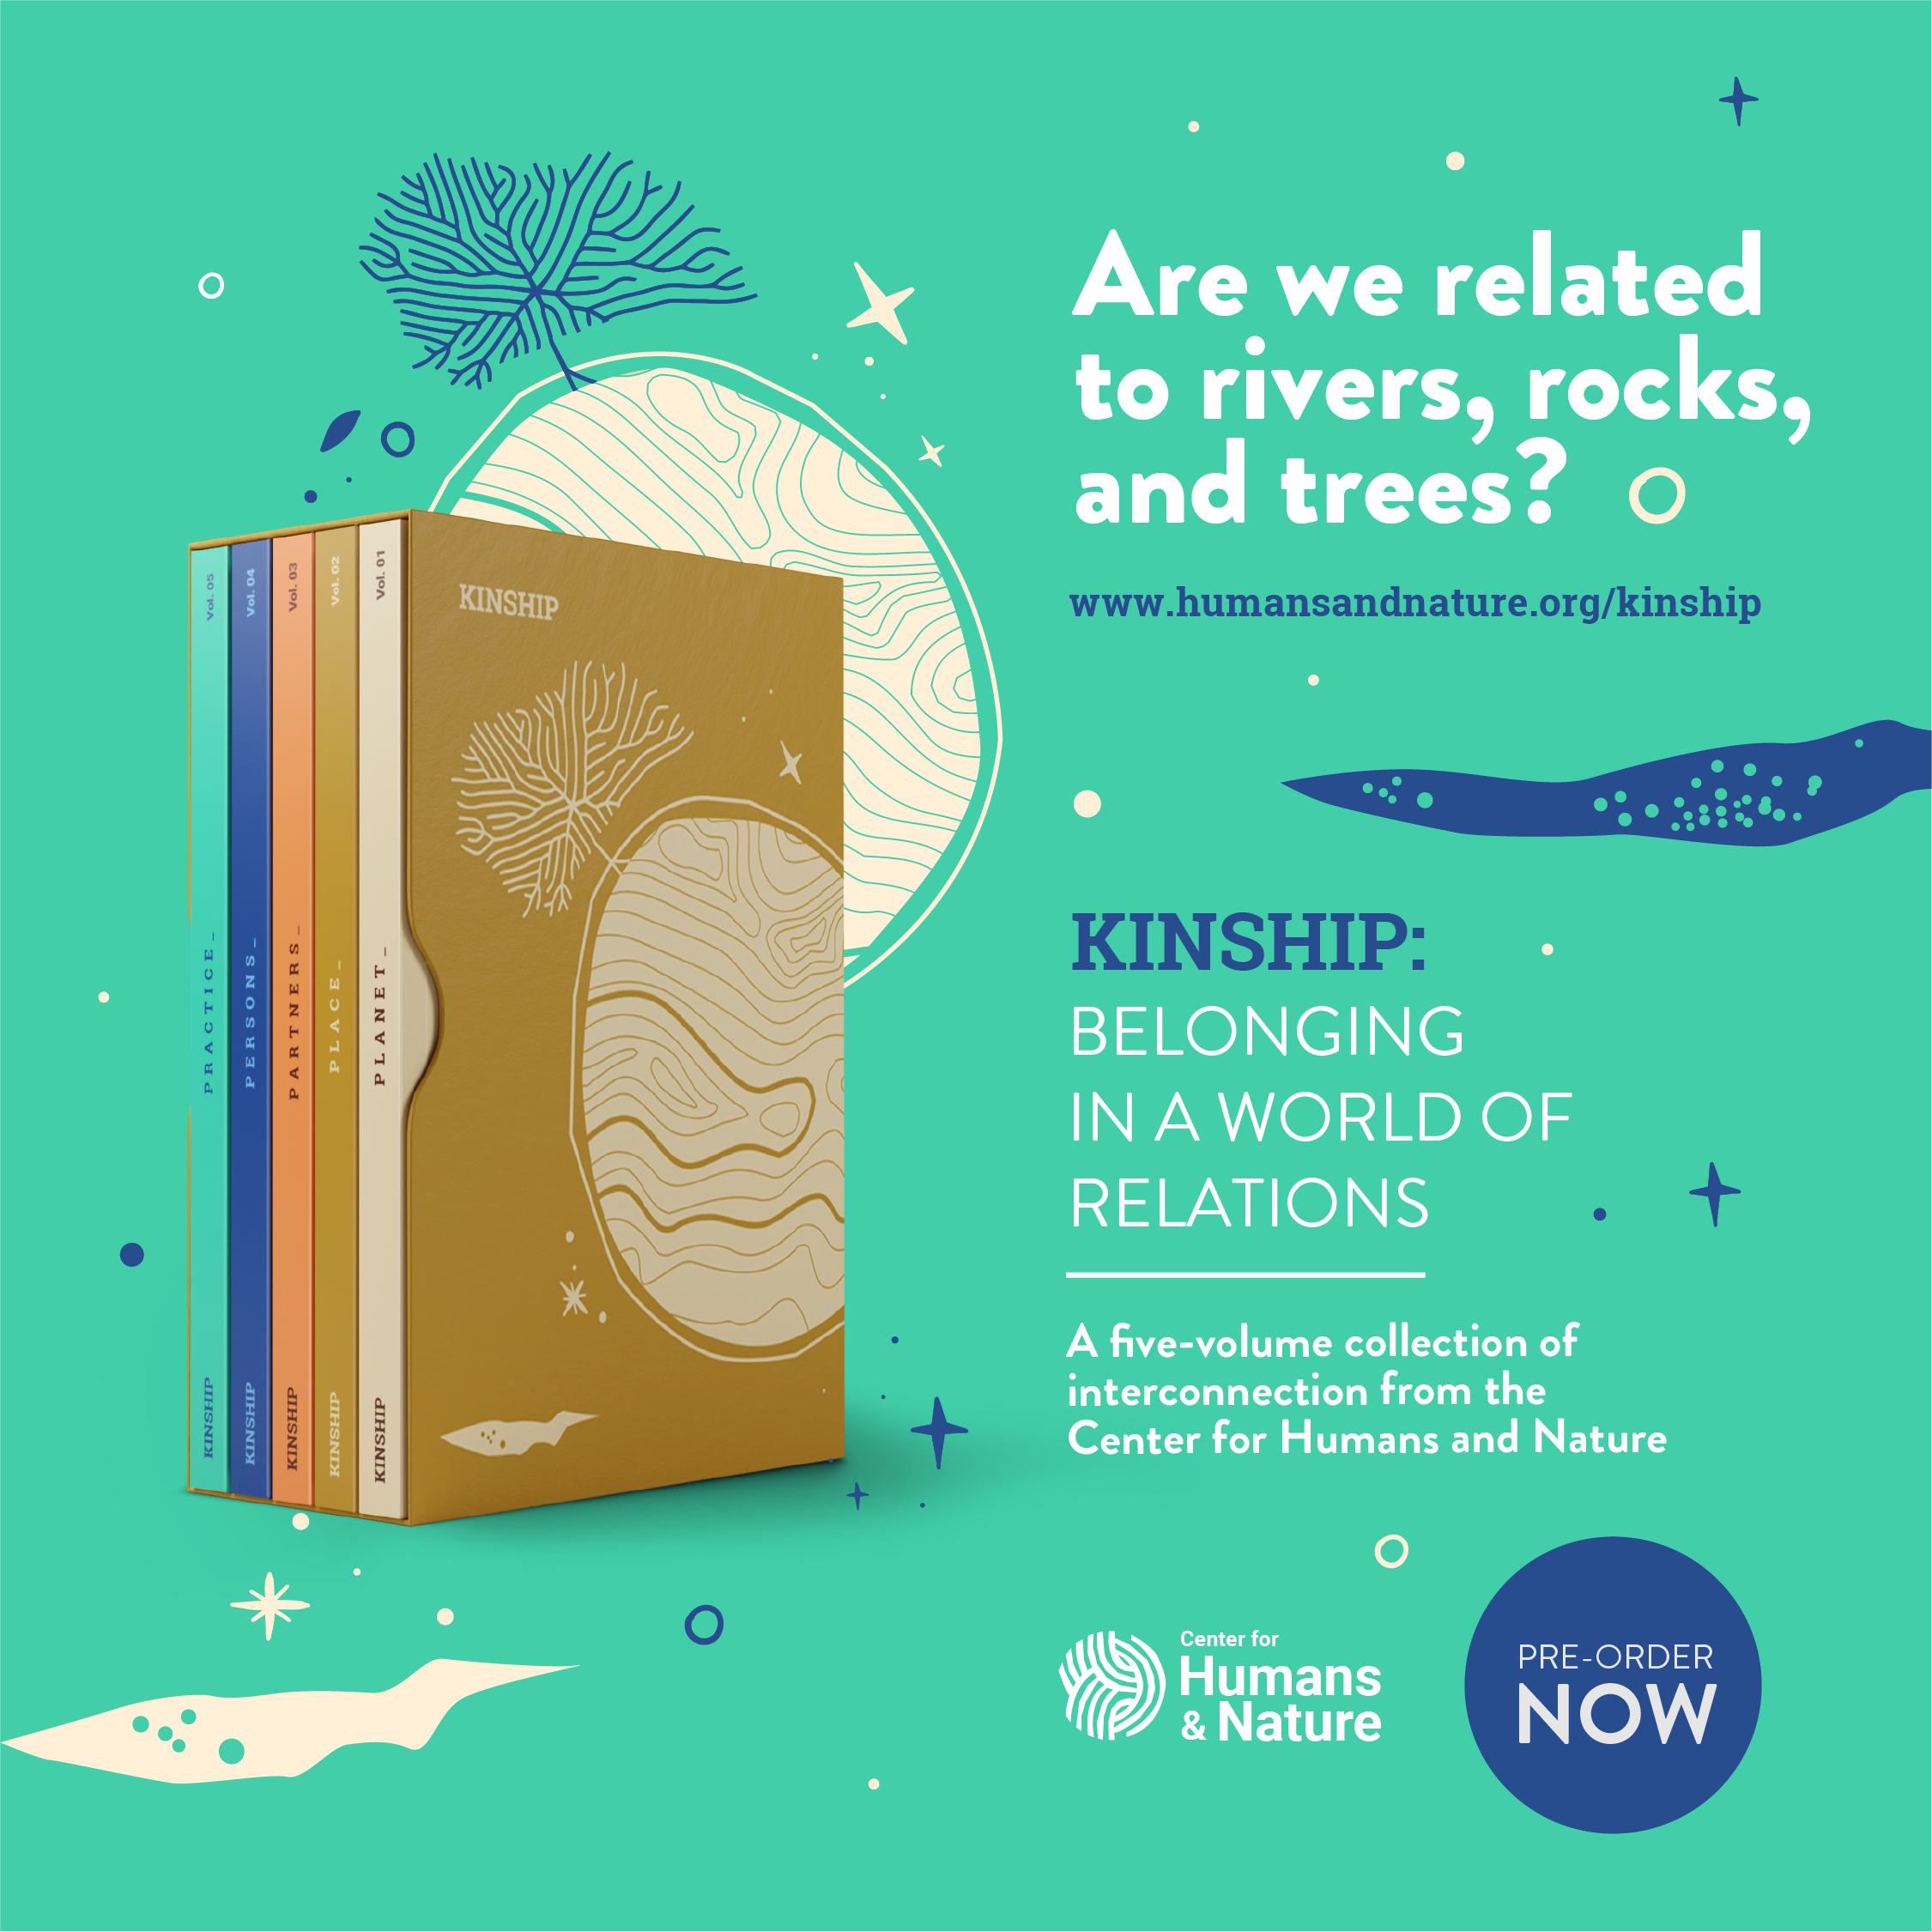 Are we related to rivers, rocks and trees? www.humansandnature.org/kinship Kinship: Belonging in a world of relations. A five-volume collection of interconnection from the Center for Humans and Nature.